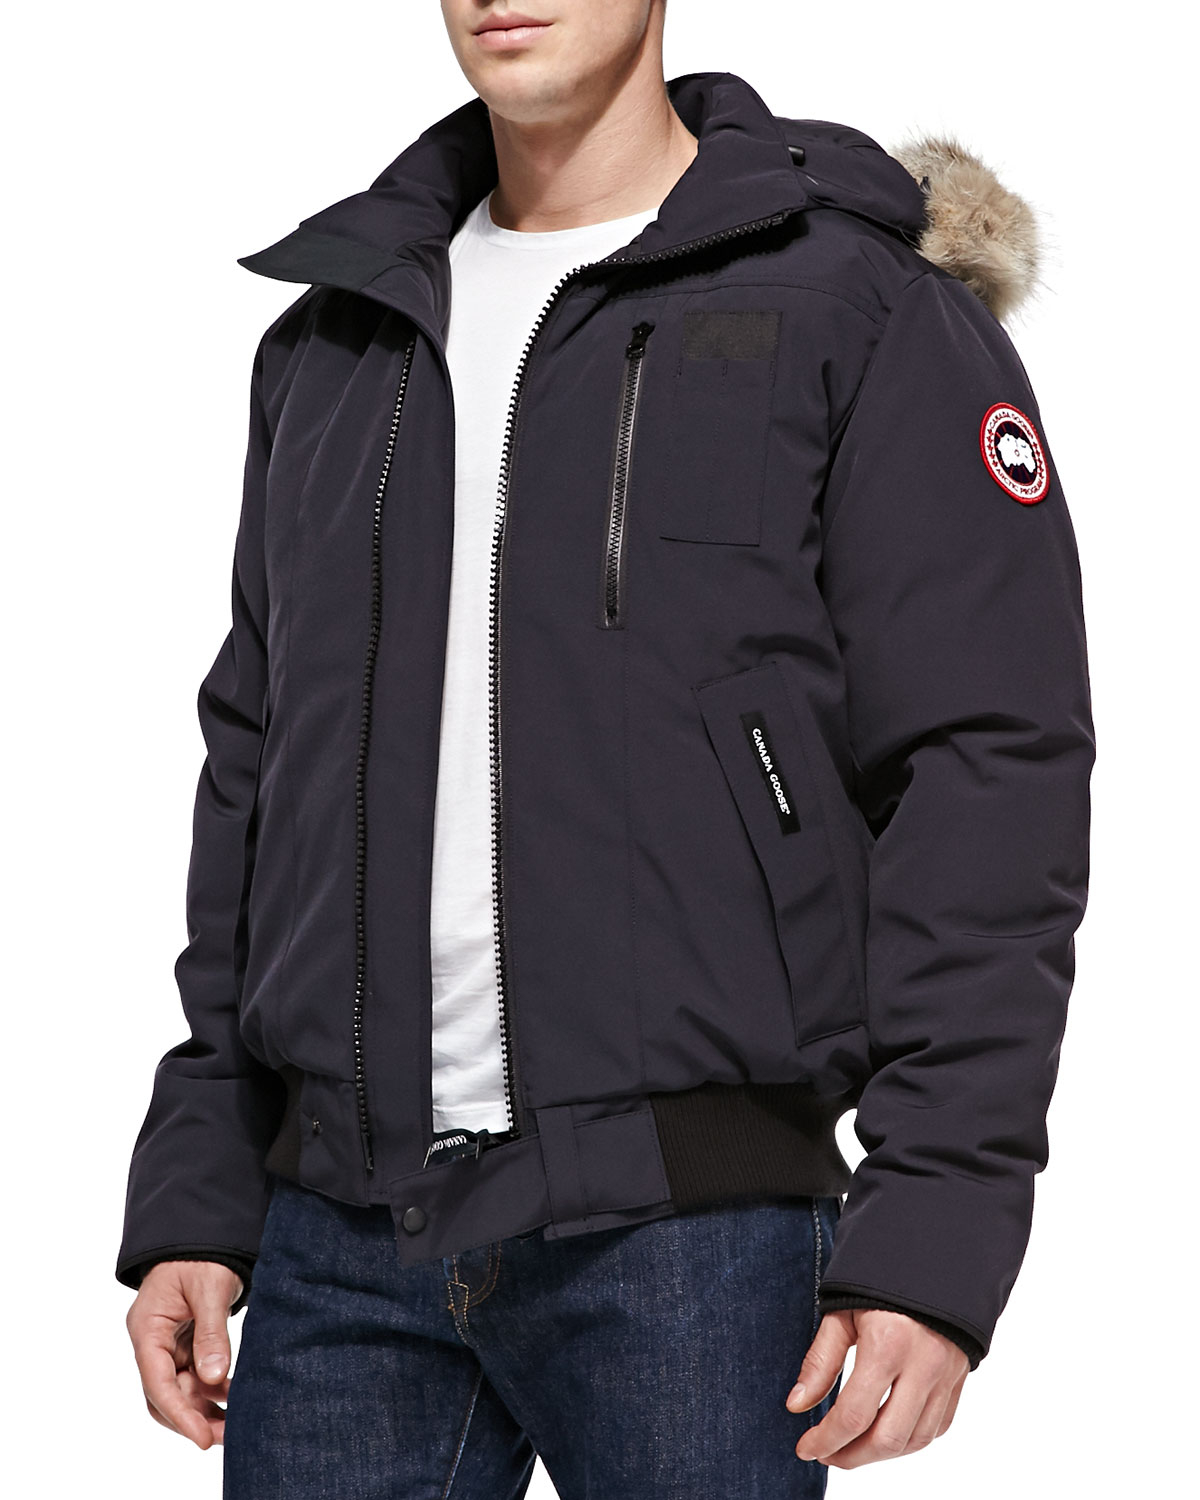 canada goose doudoune pas cher canada goose jackets. Black Bedroom Furniture Sets. Home Design Ideas